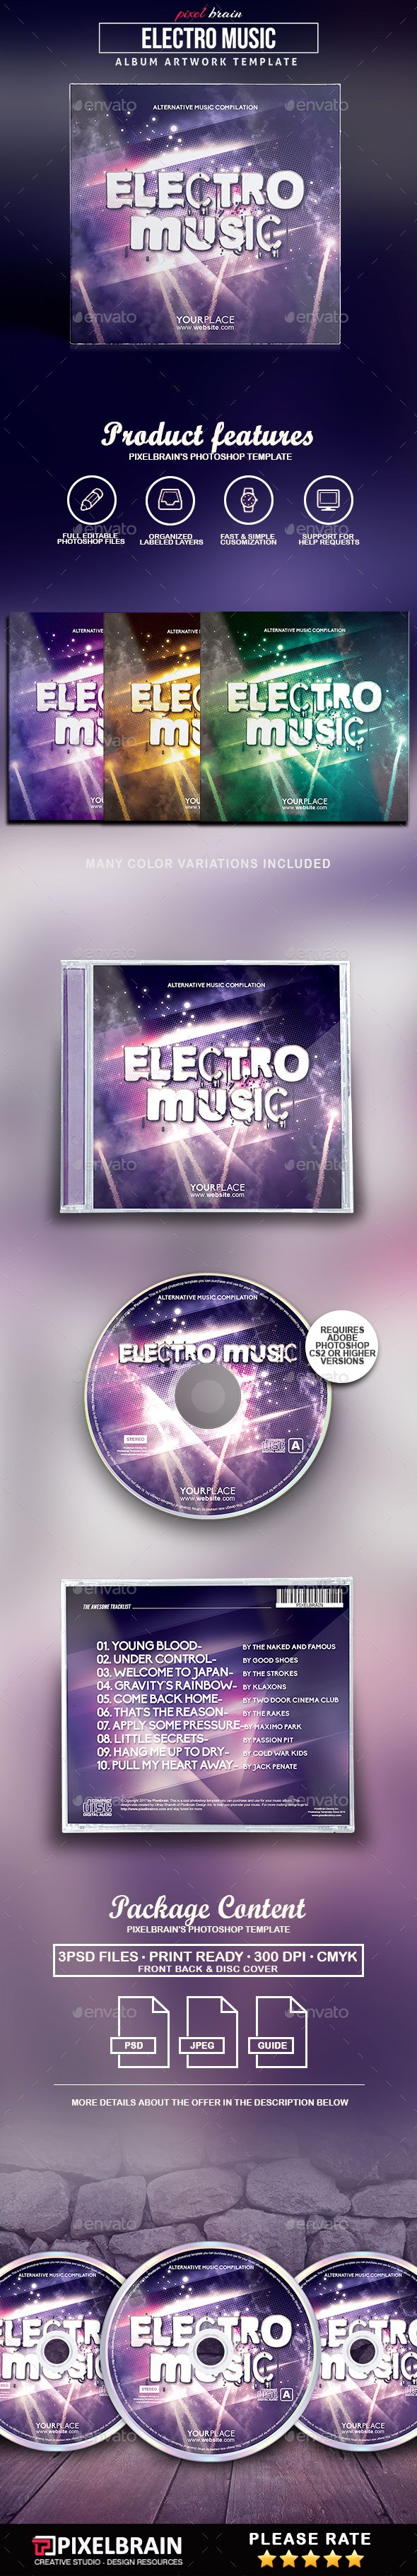 Electro Music CD #Cover Artwork - #CD & DVD #Artwork Print #Templates Download here: https://graphicriver.net/item/electro-music-cd-cover-artwork/19500390?ref=alena994